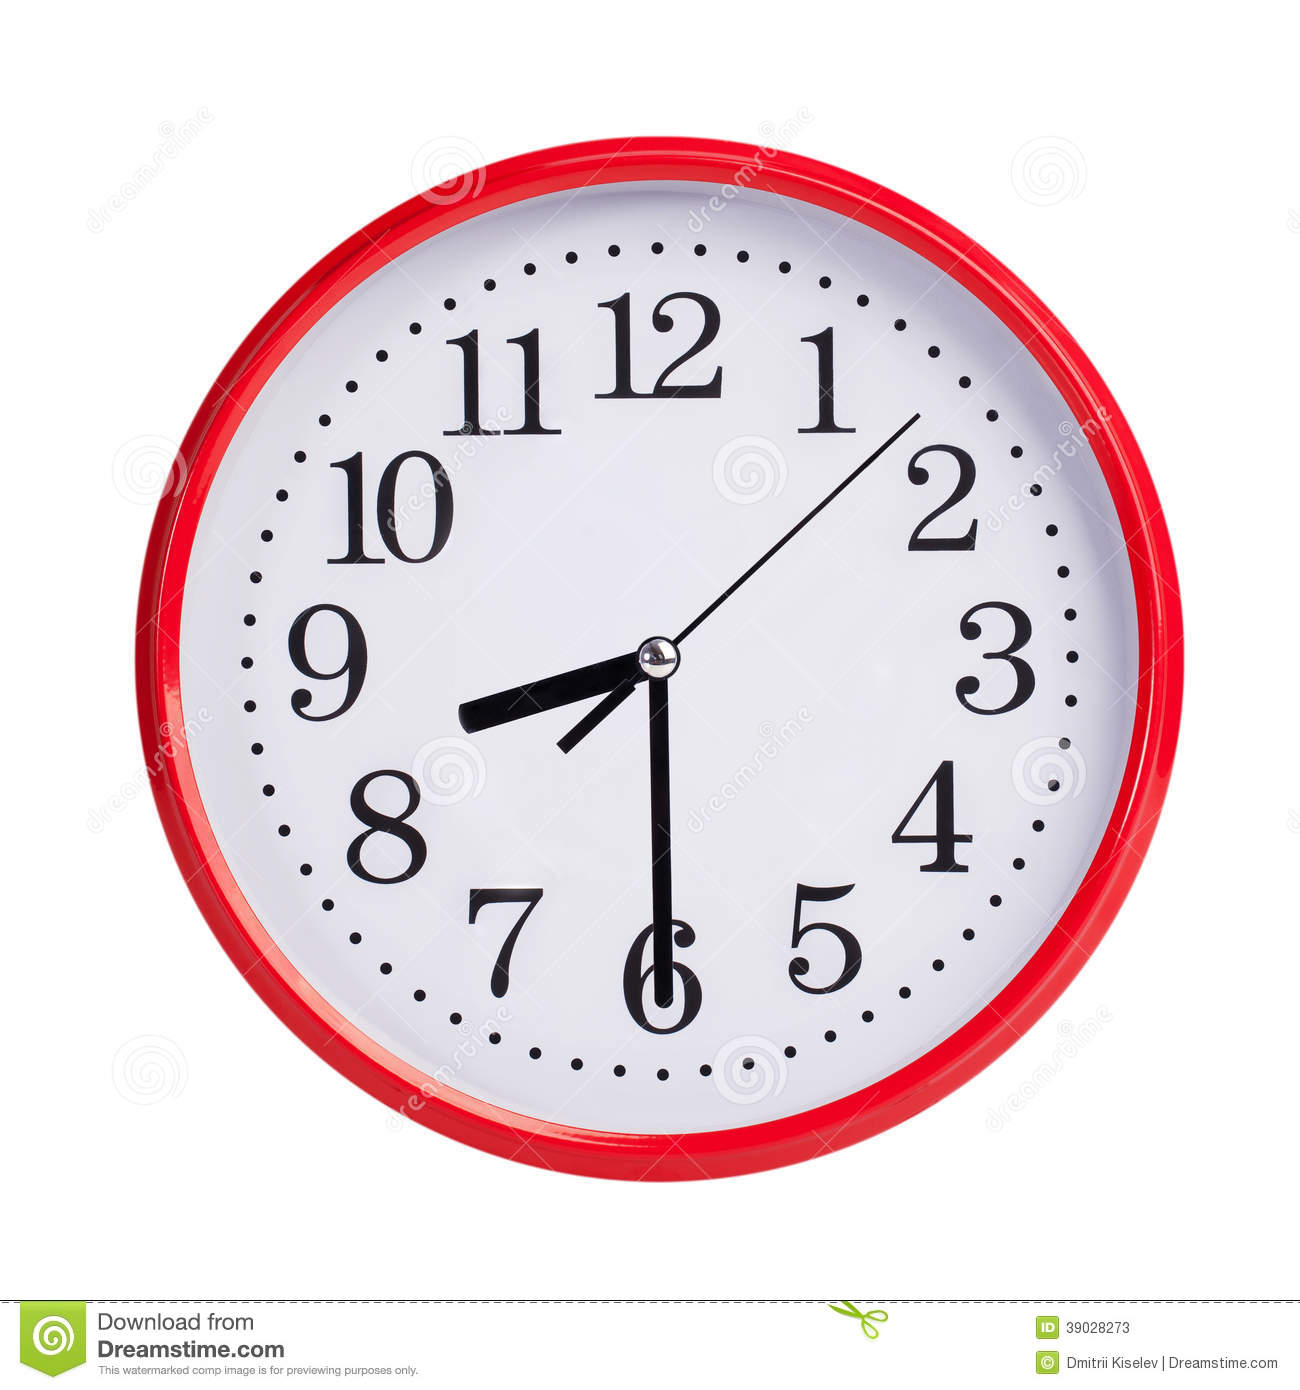 Half Past Eight On A Round Clock Face Stock Image